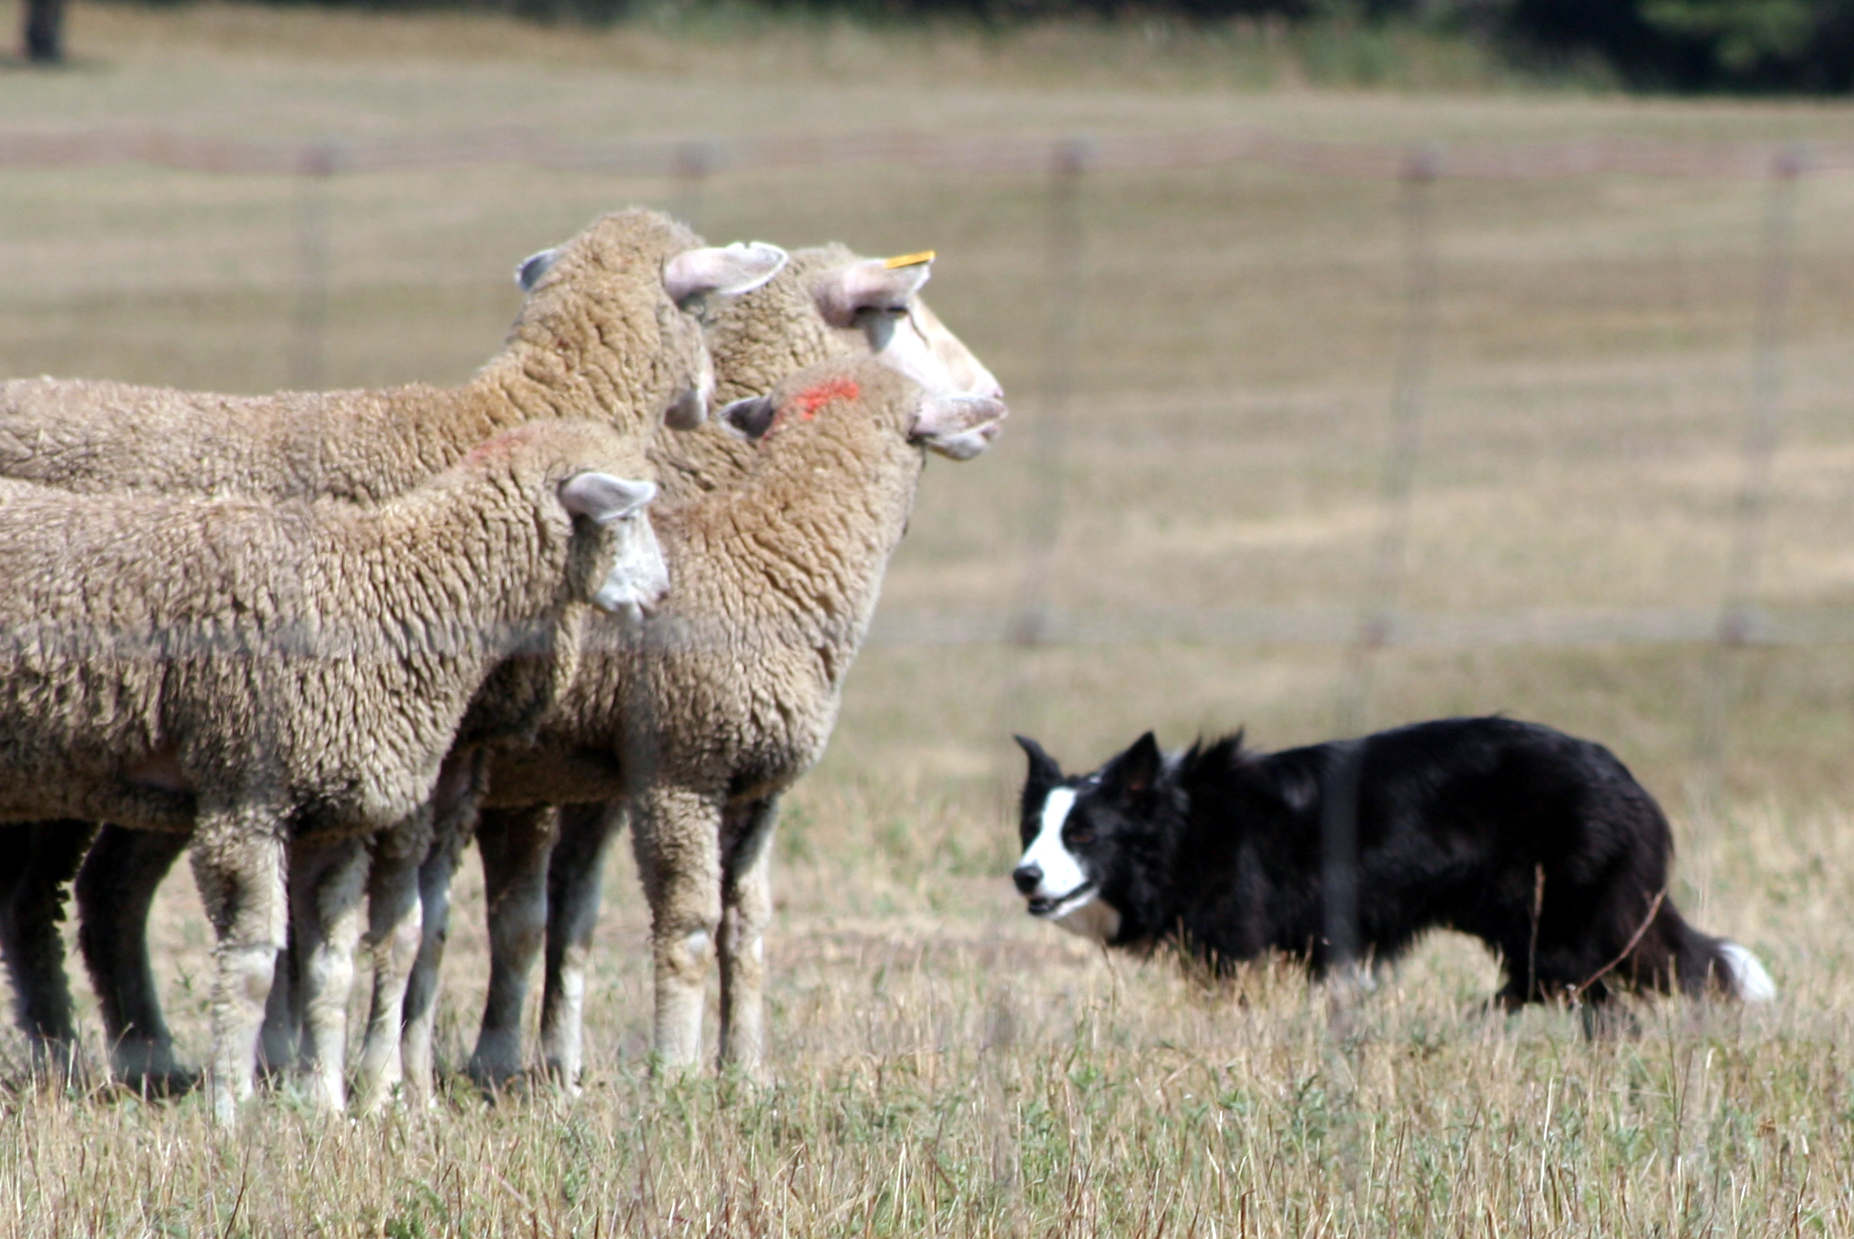 Border Collie gives sheep the eye